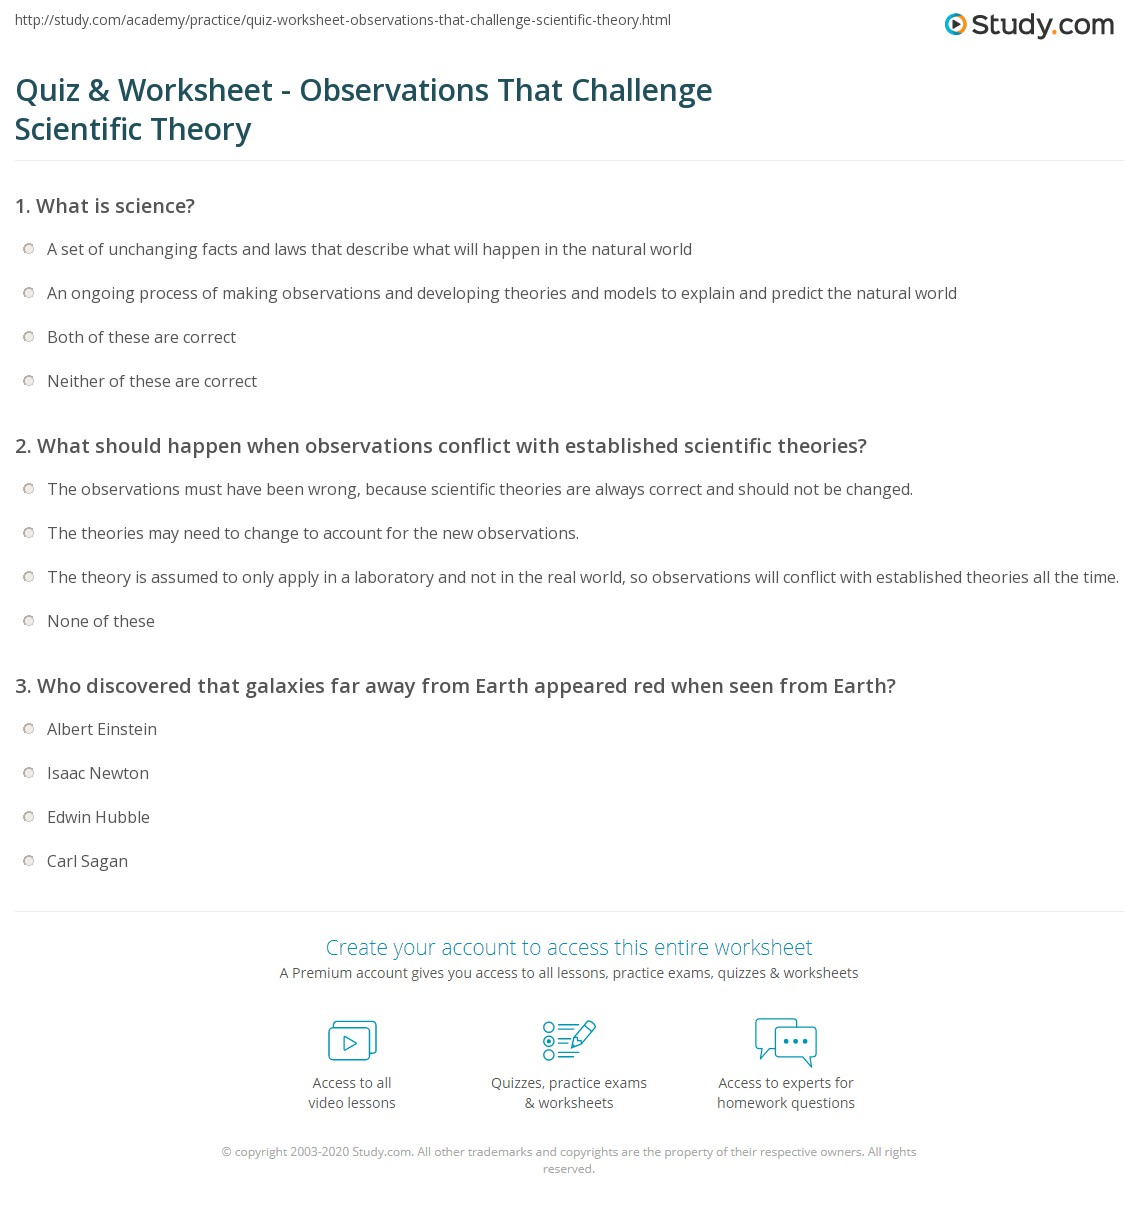 Worksheets Science Skills Worksheet Answers science skills worksheets understanding bias answer key intrepidpath quiz worksheet observations that challenge scientific theory